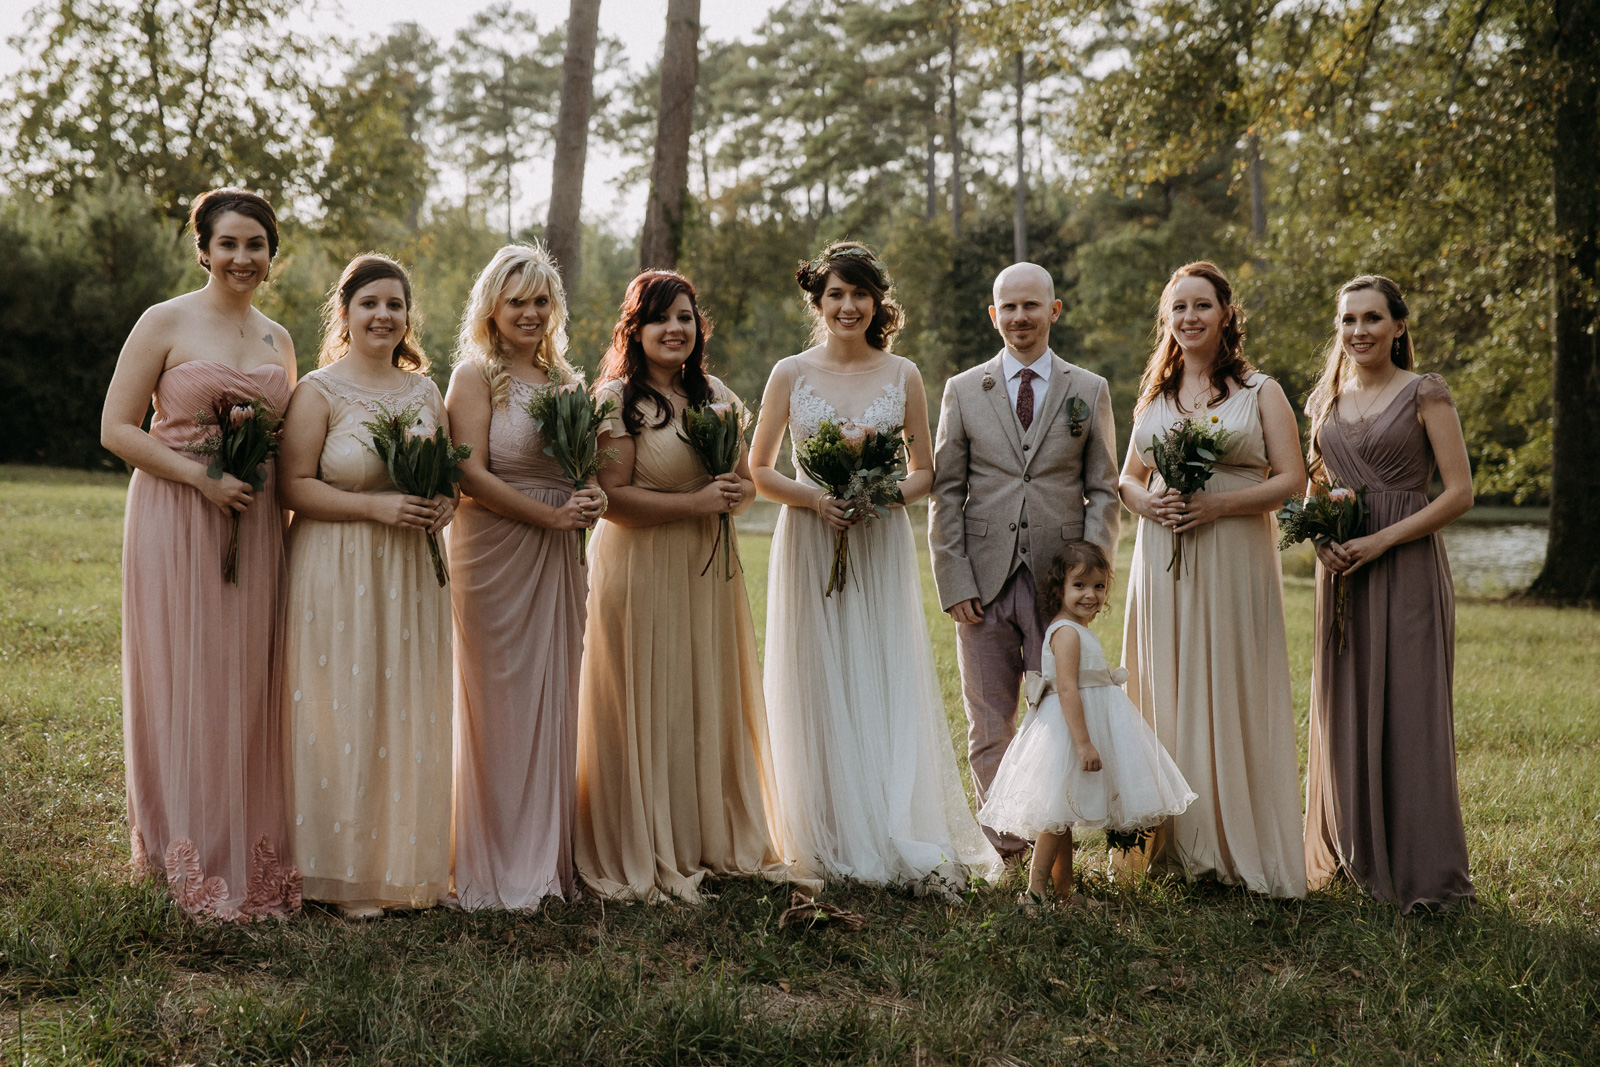 The bride and bridesmaids at Rasberry Greene